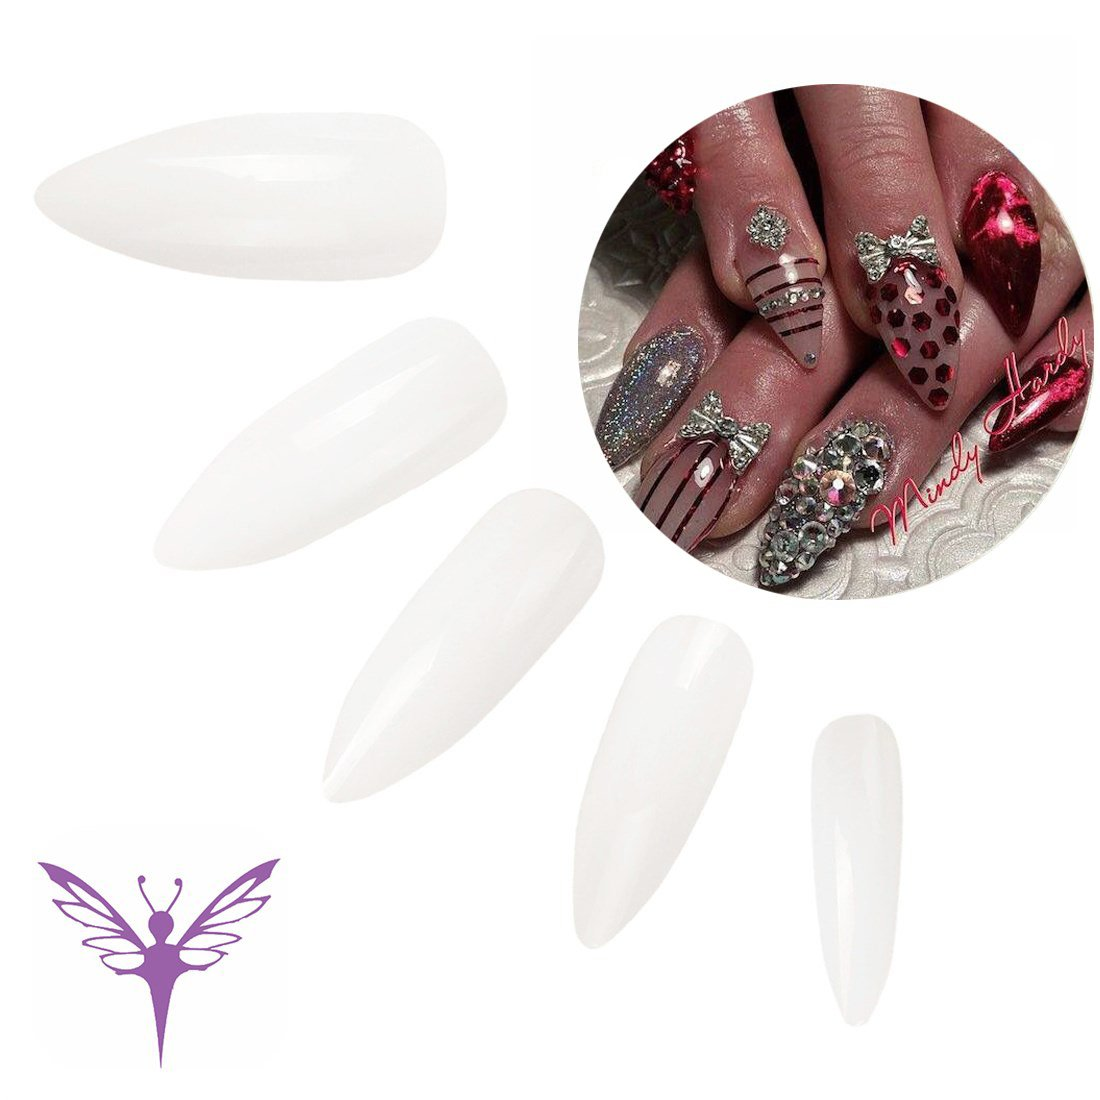 f83b187bcdc Get Quotations · Ejiubas Natural Long Stiletto Nails Full Cover False Nails  Acrylic Nail Designs - Pack of 500